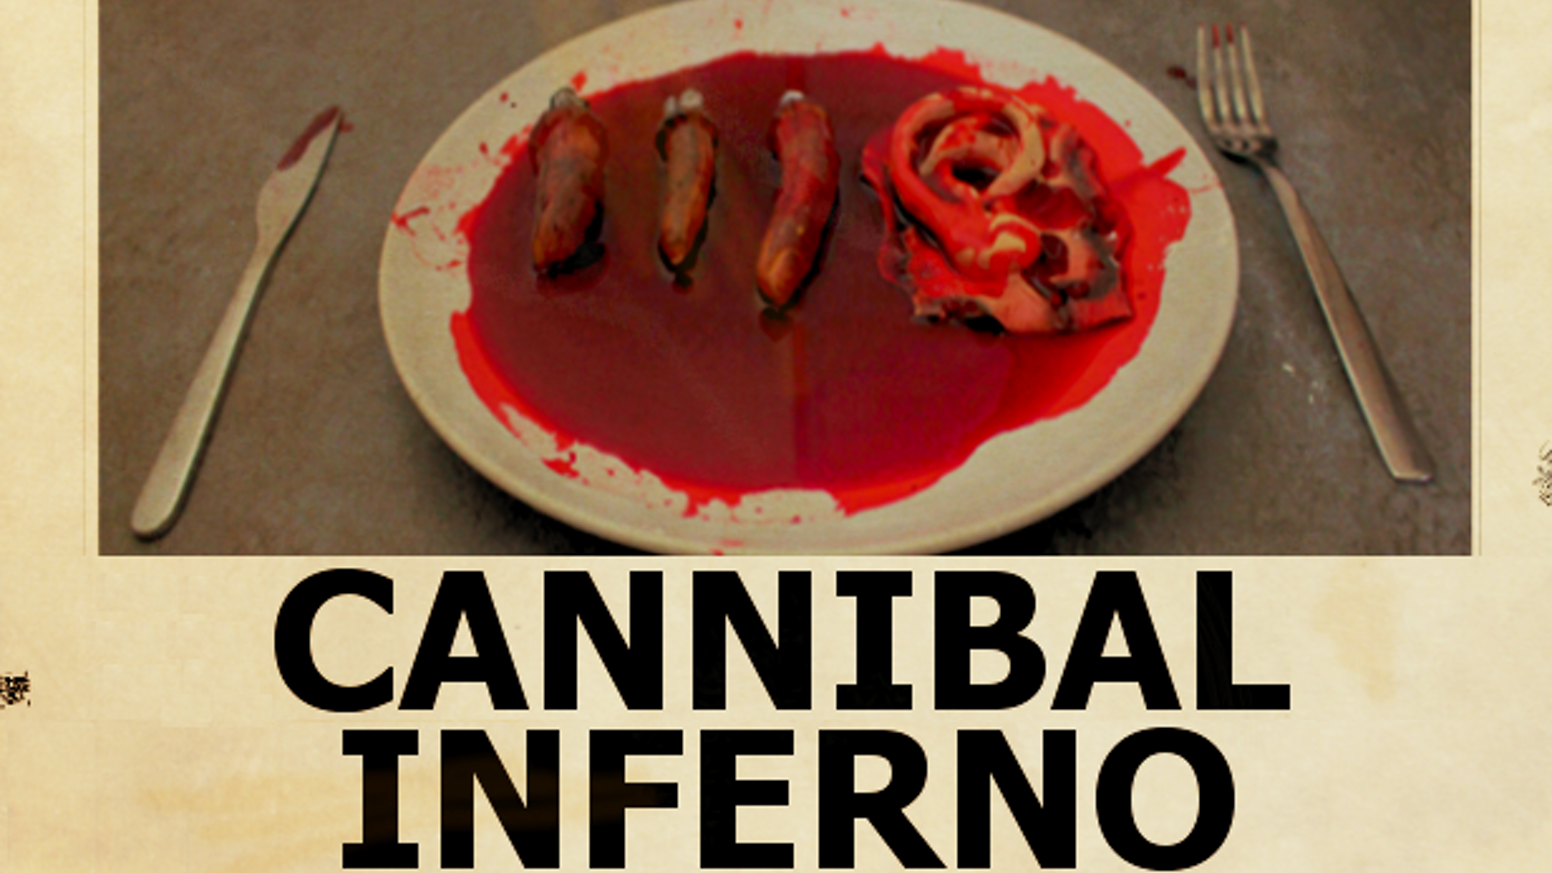 Cannibal Inferno This Is An Original Independent Horror Movie The Story When A Group Of Art